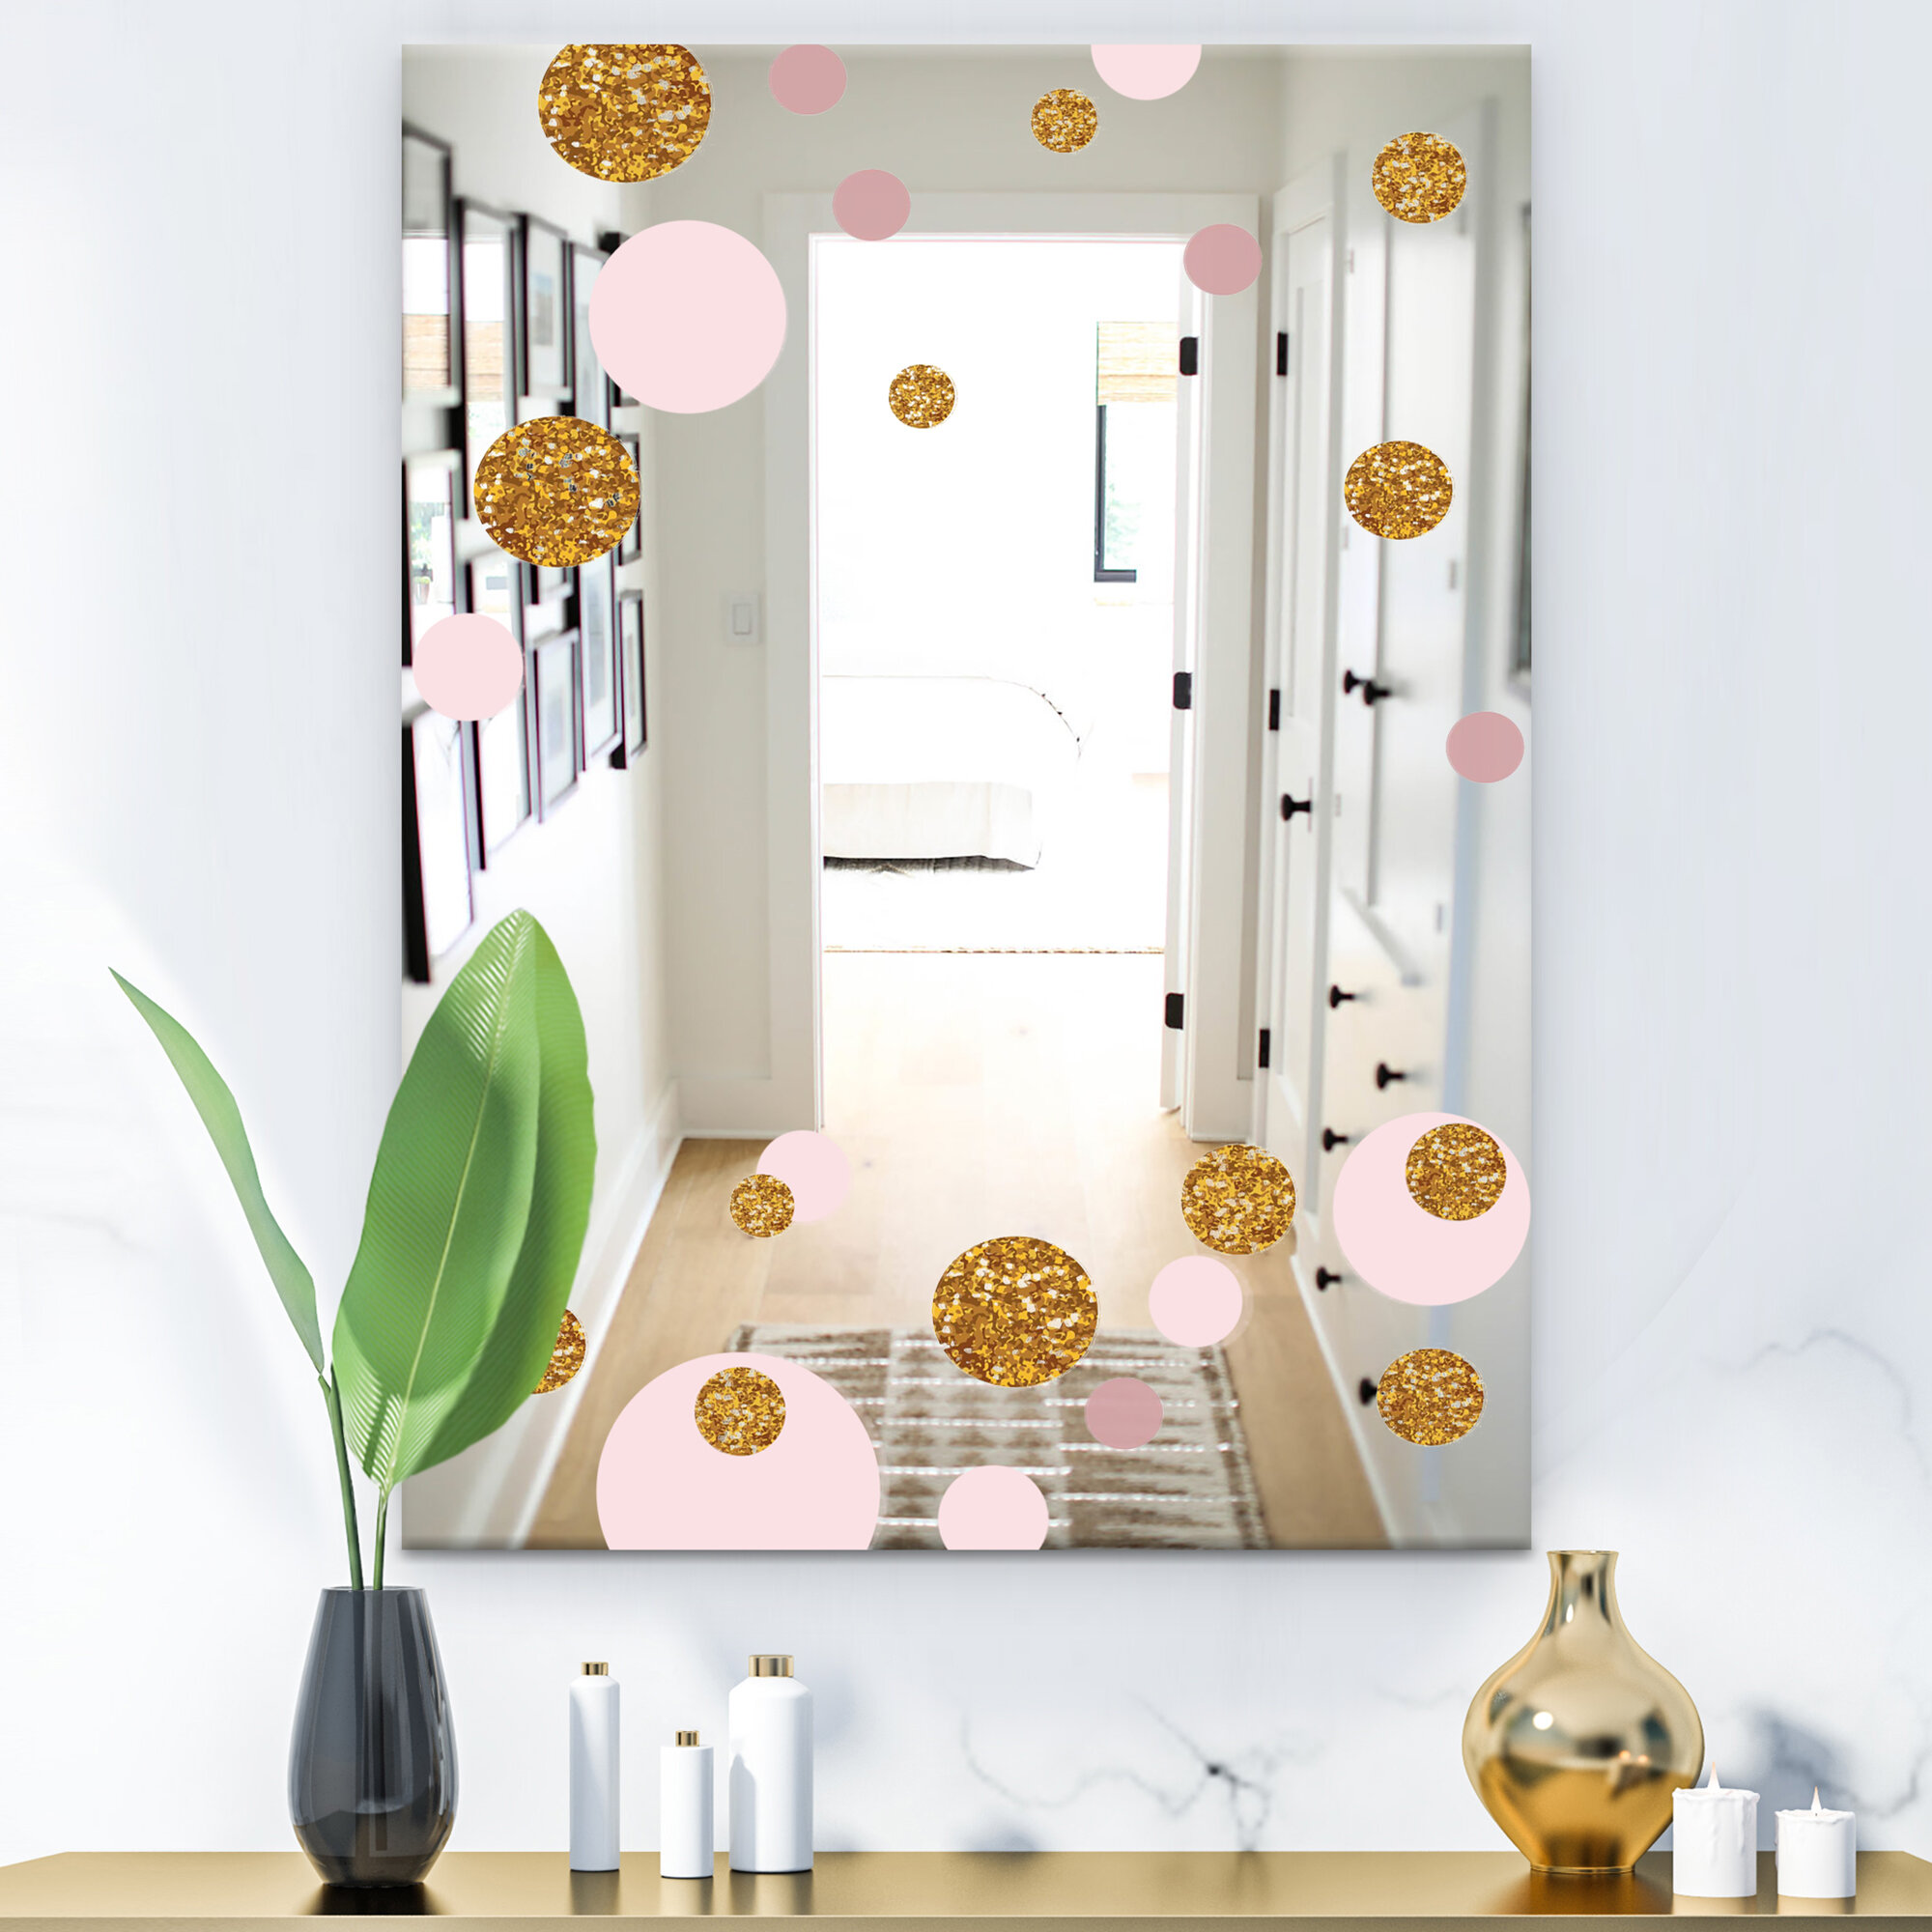 Circular Rhythm Decorative Glam Bathroom Vanity Mirror